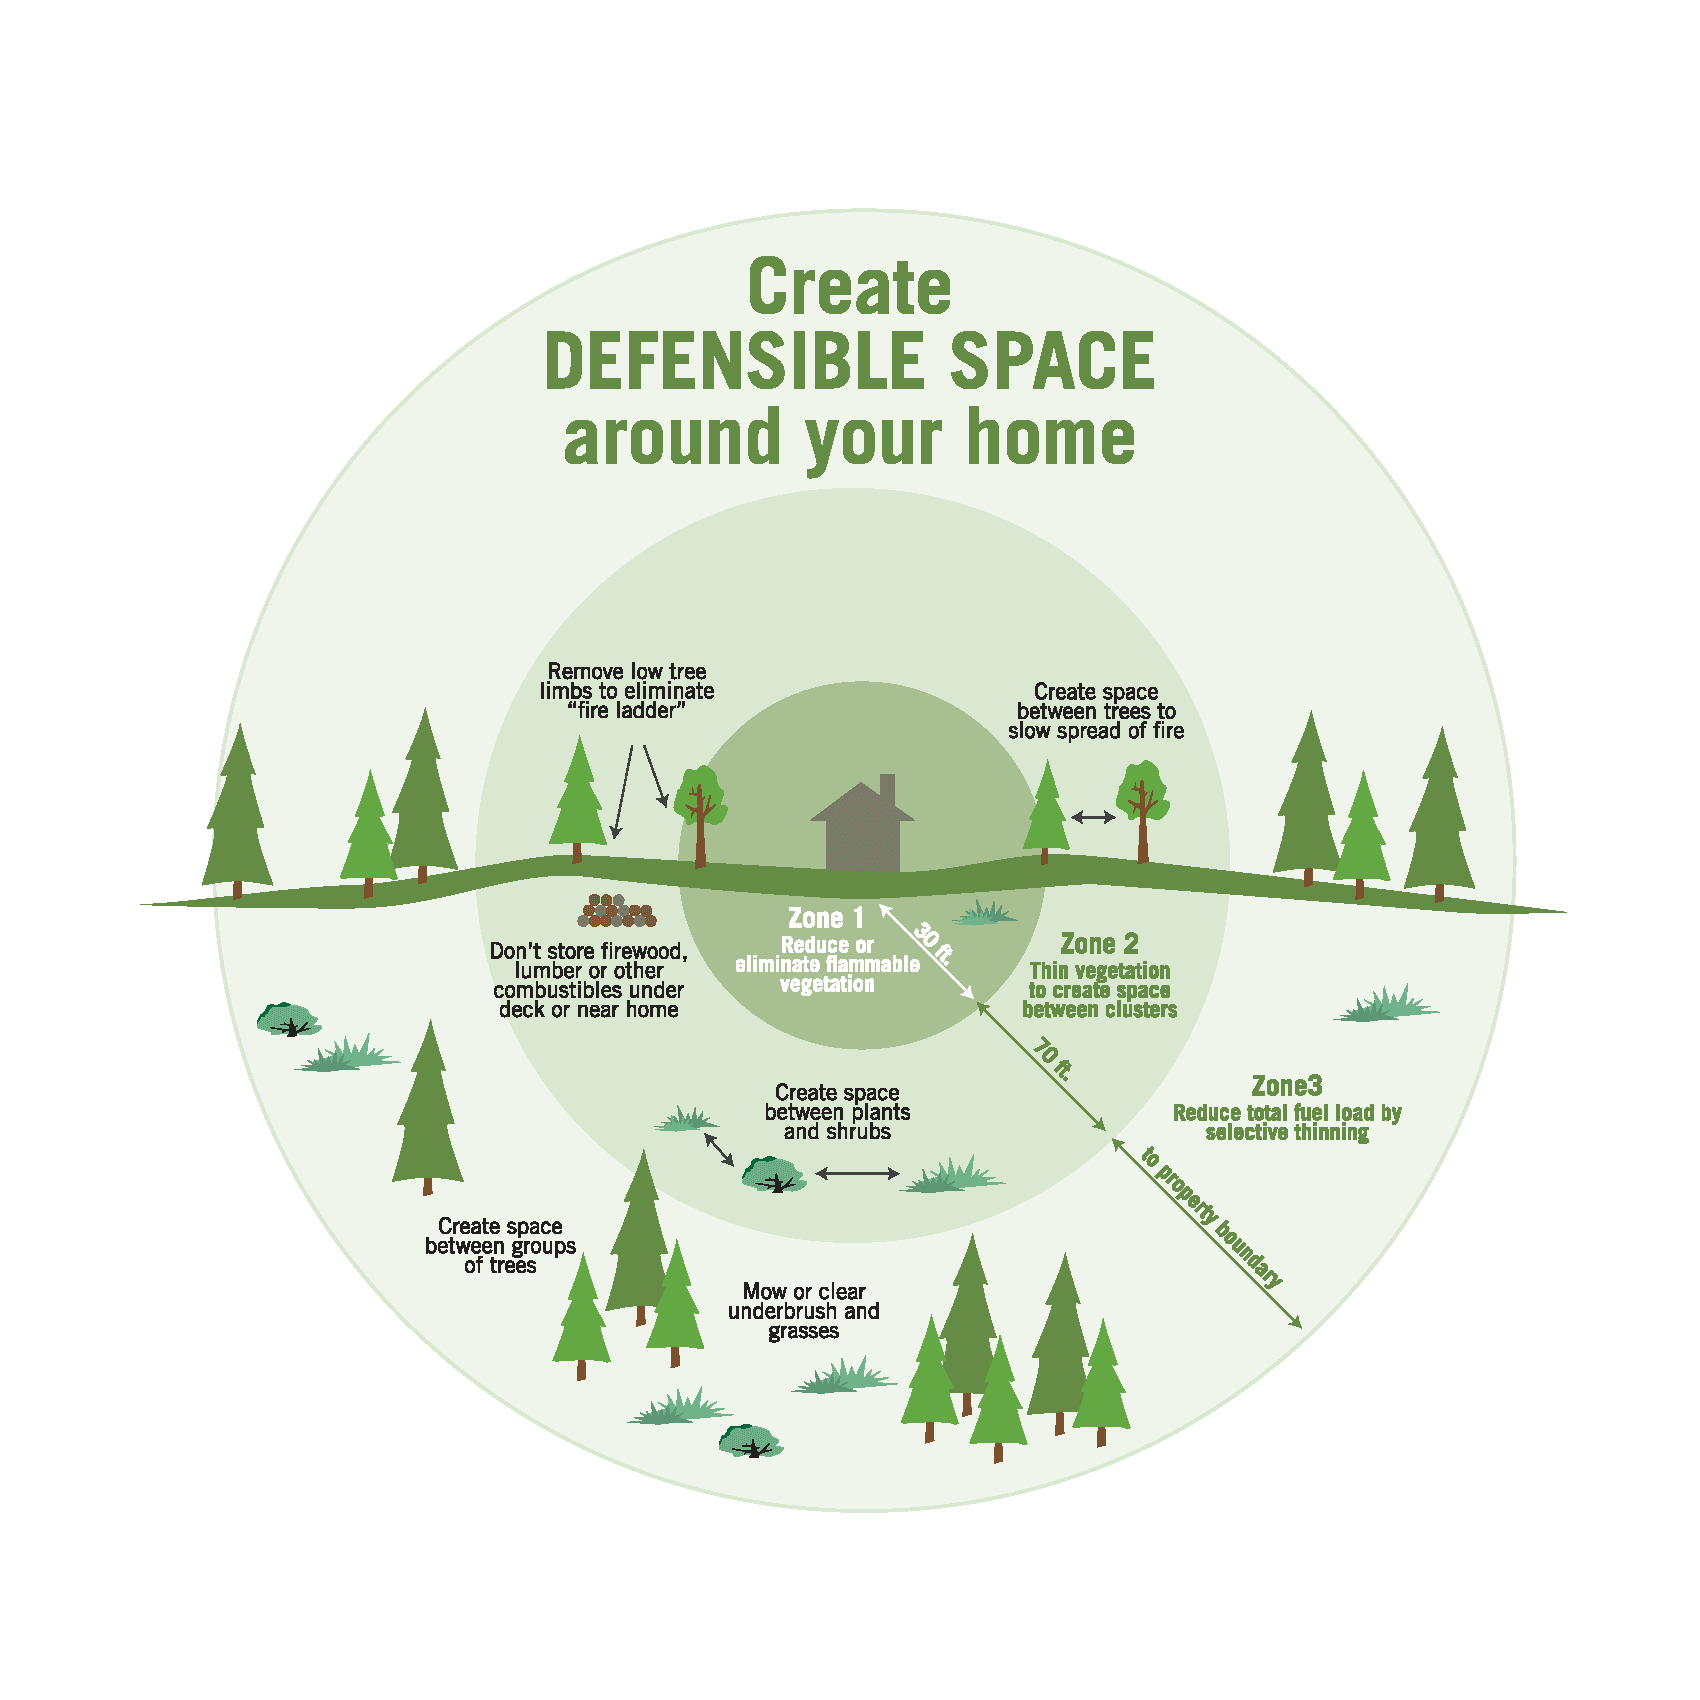 Diagram of defensible space zones.